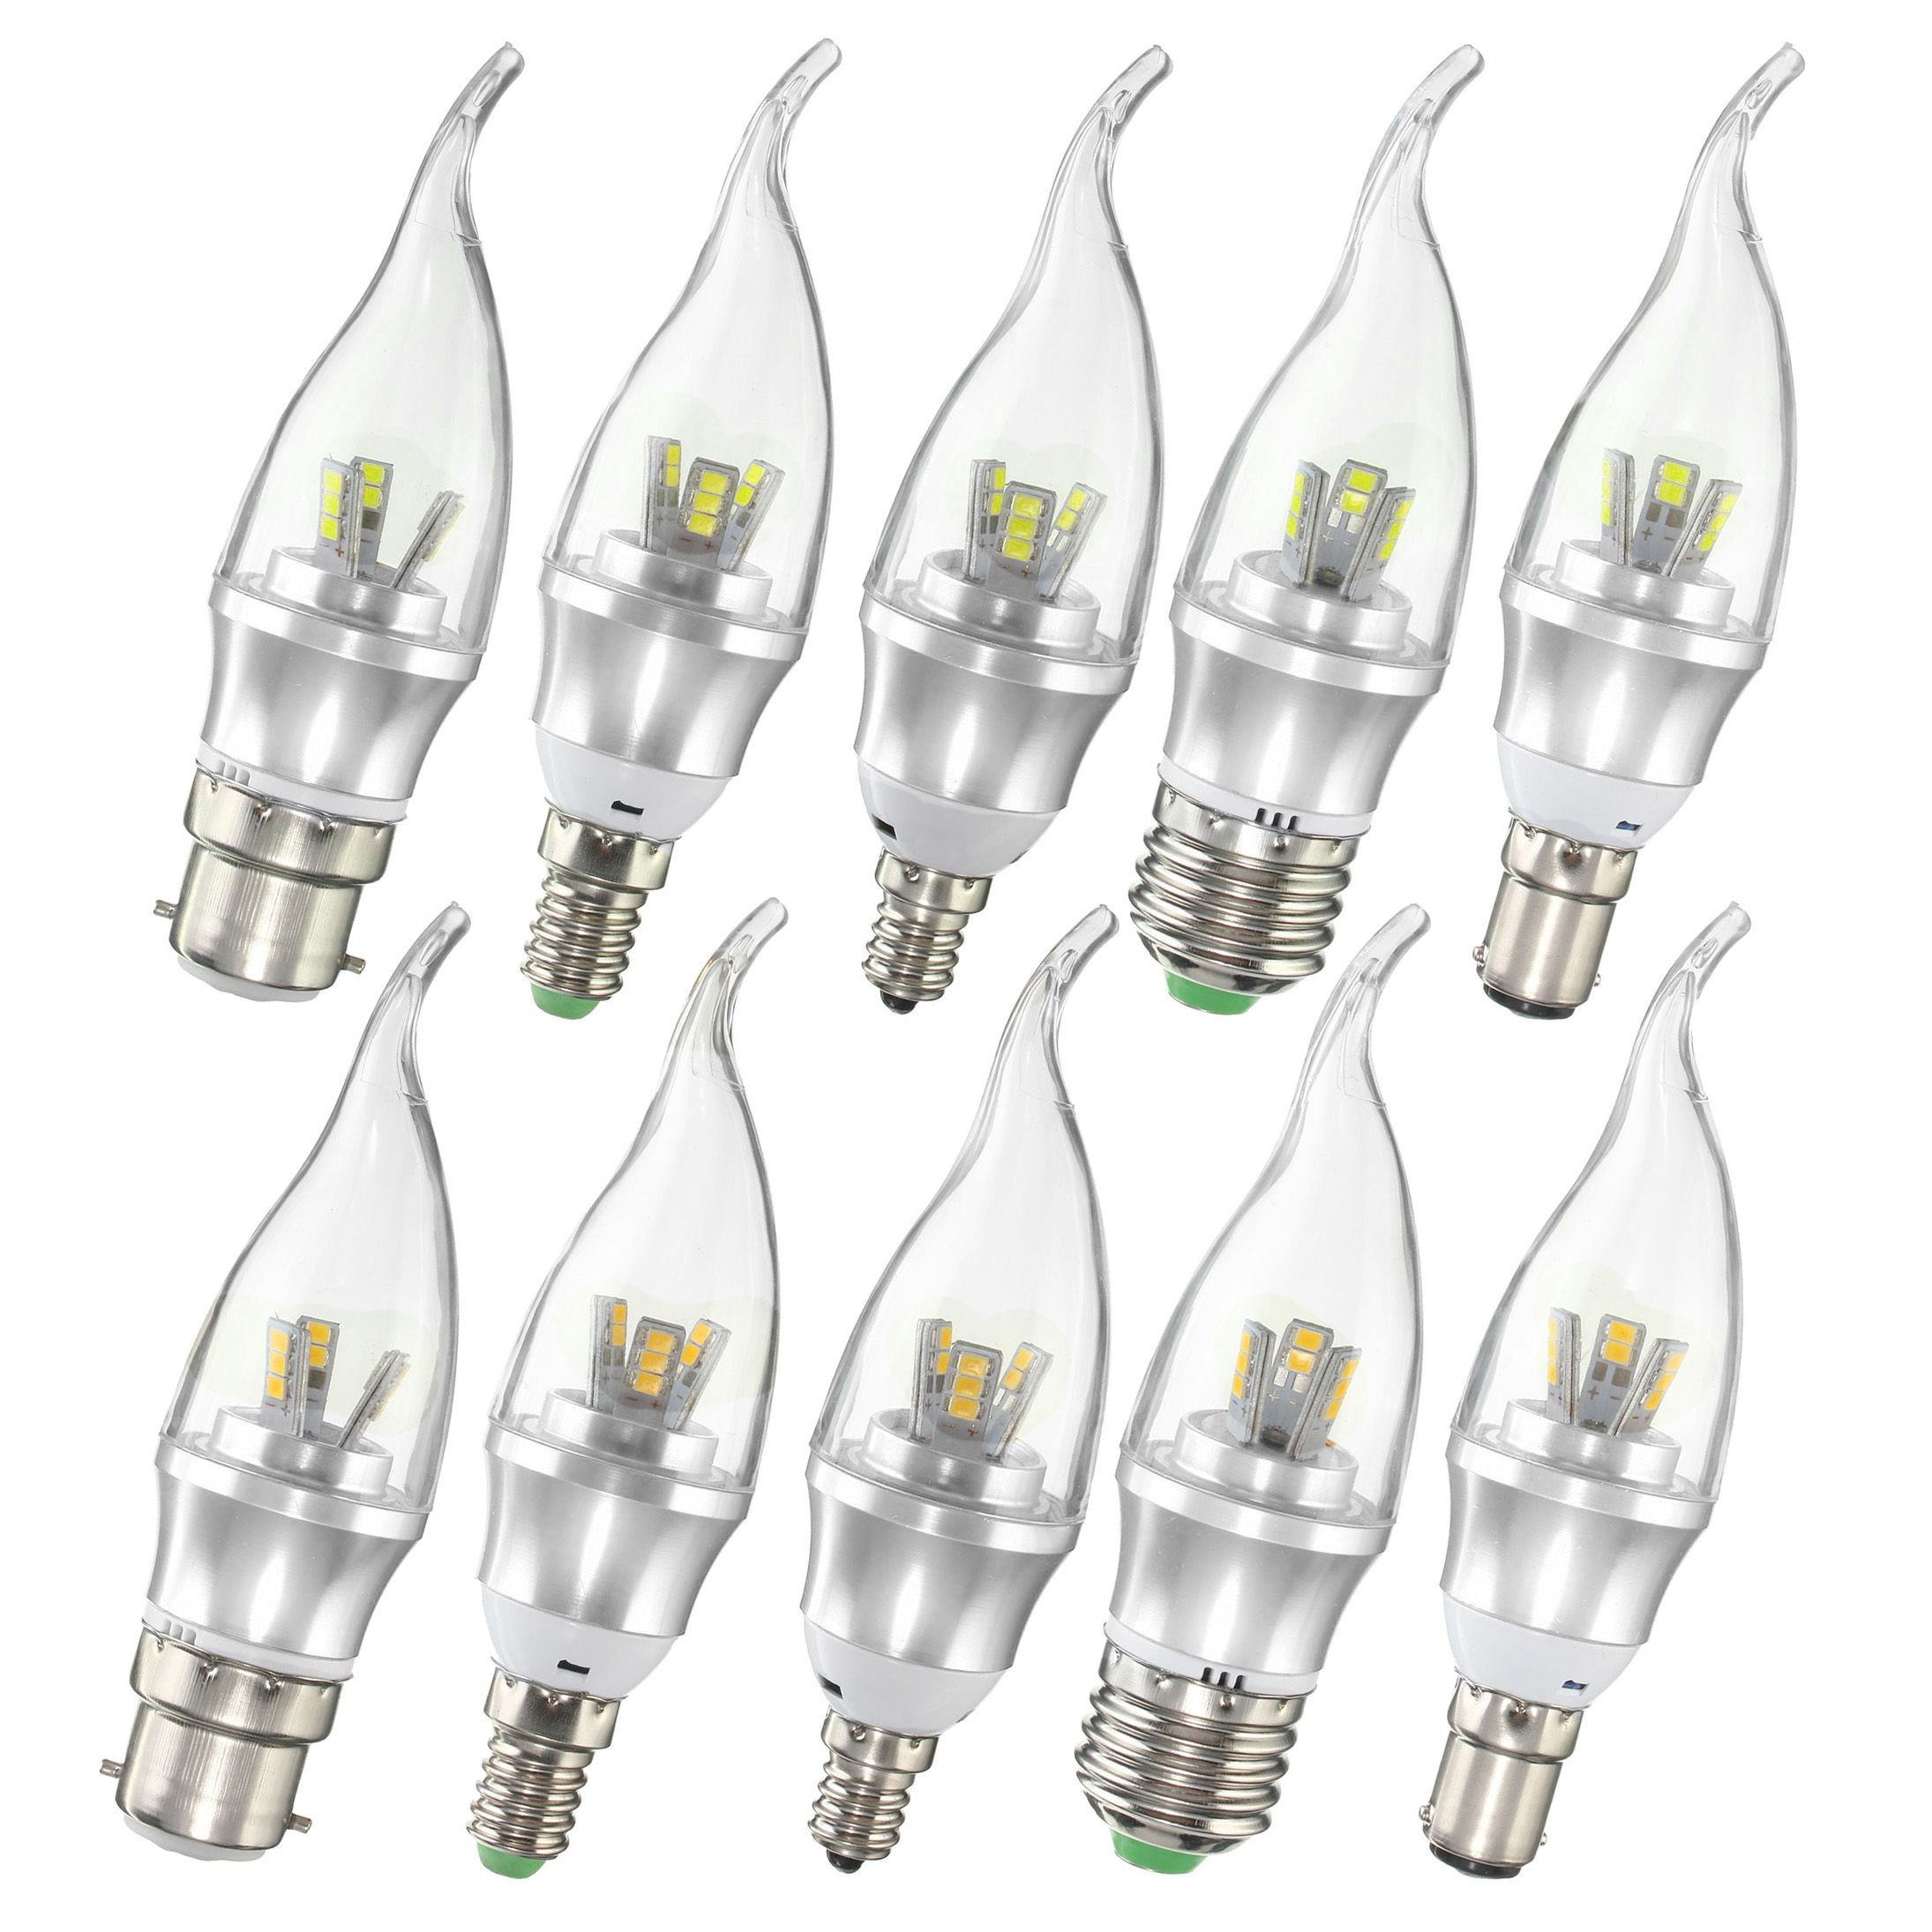 E27 E14 E12 B22 B15 3w Led Pure White Warm White 15 Smd 2835 Led Candle Light Lamp Bulb Ac85 265v Kotimart Com Led Candles Candlelight St Kitts And Nevis